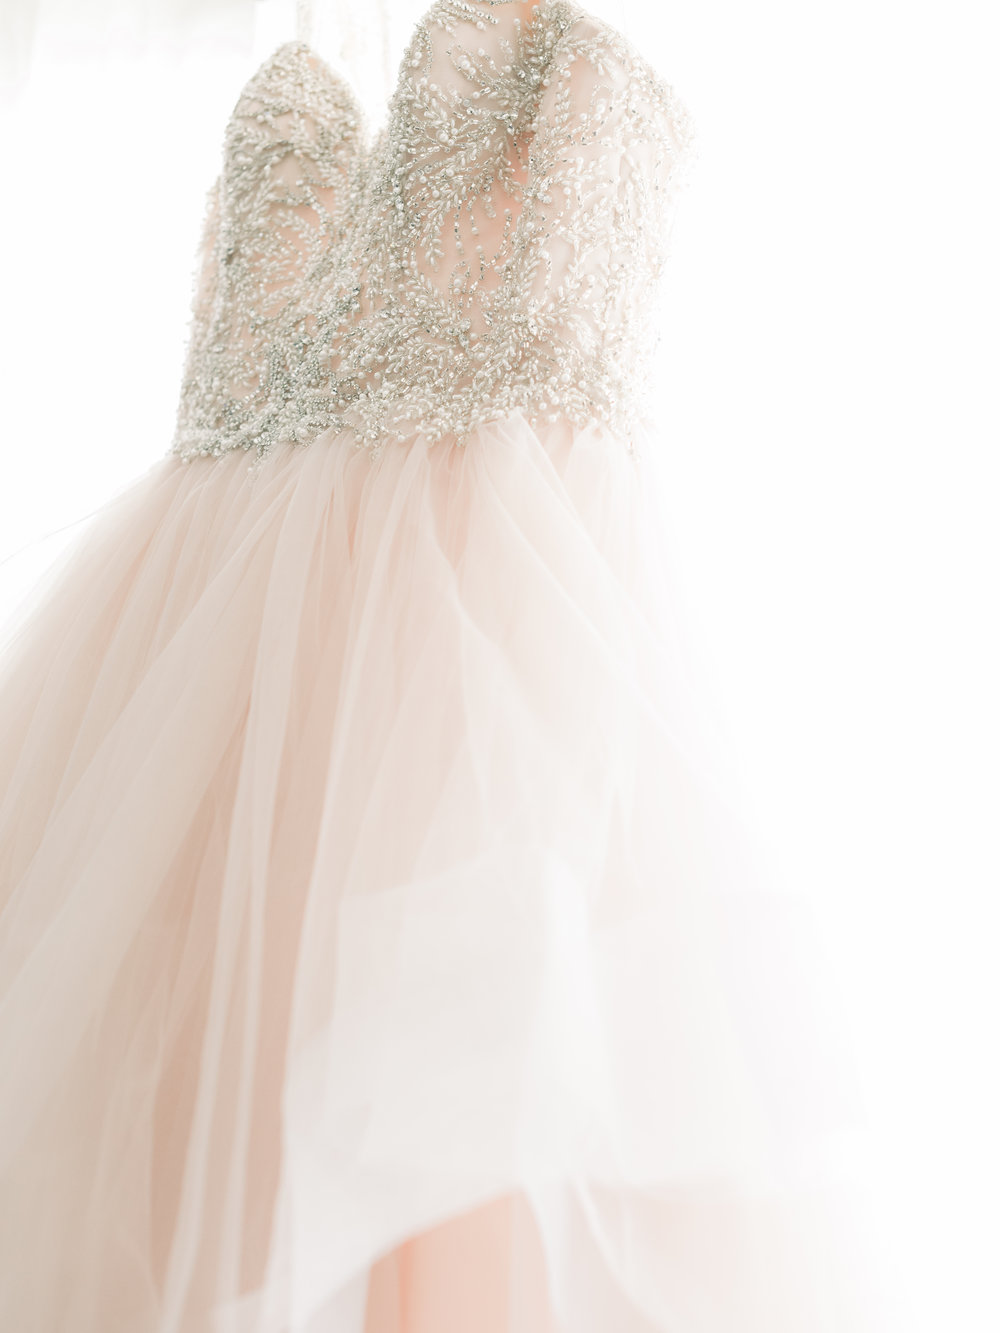 pink-wedding-gown-with-crystals.jpg